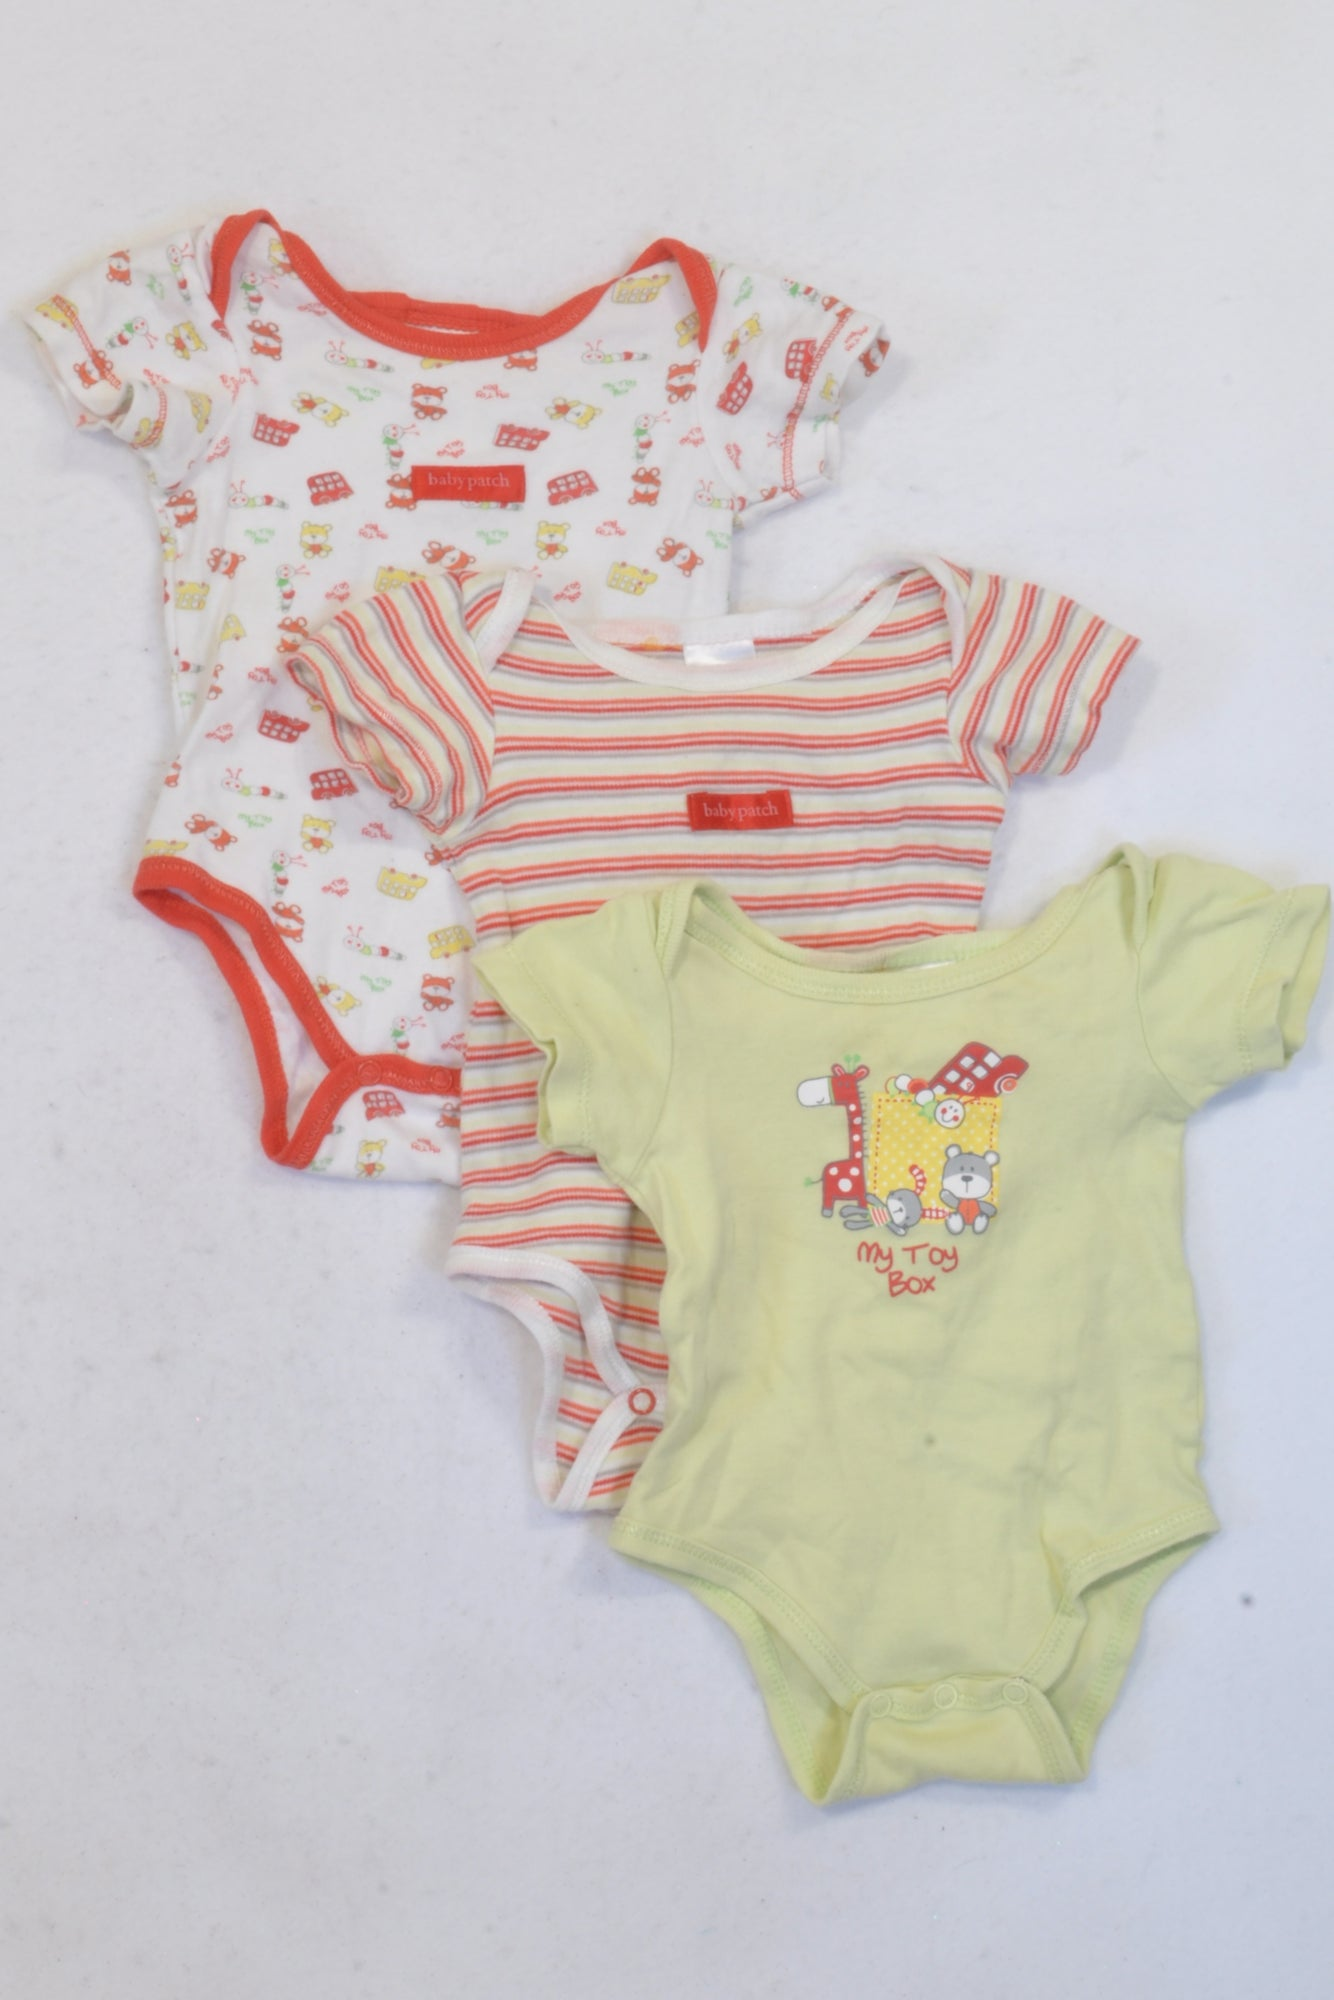 Baby Patch My Toy Box 4 Pack Outfit Unisex 3-6 months